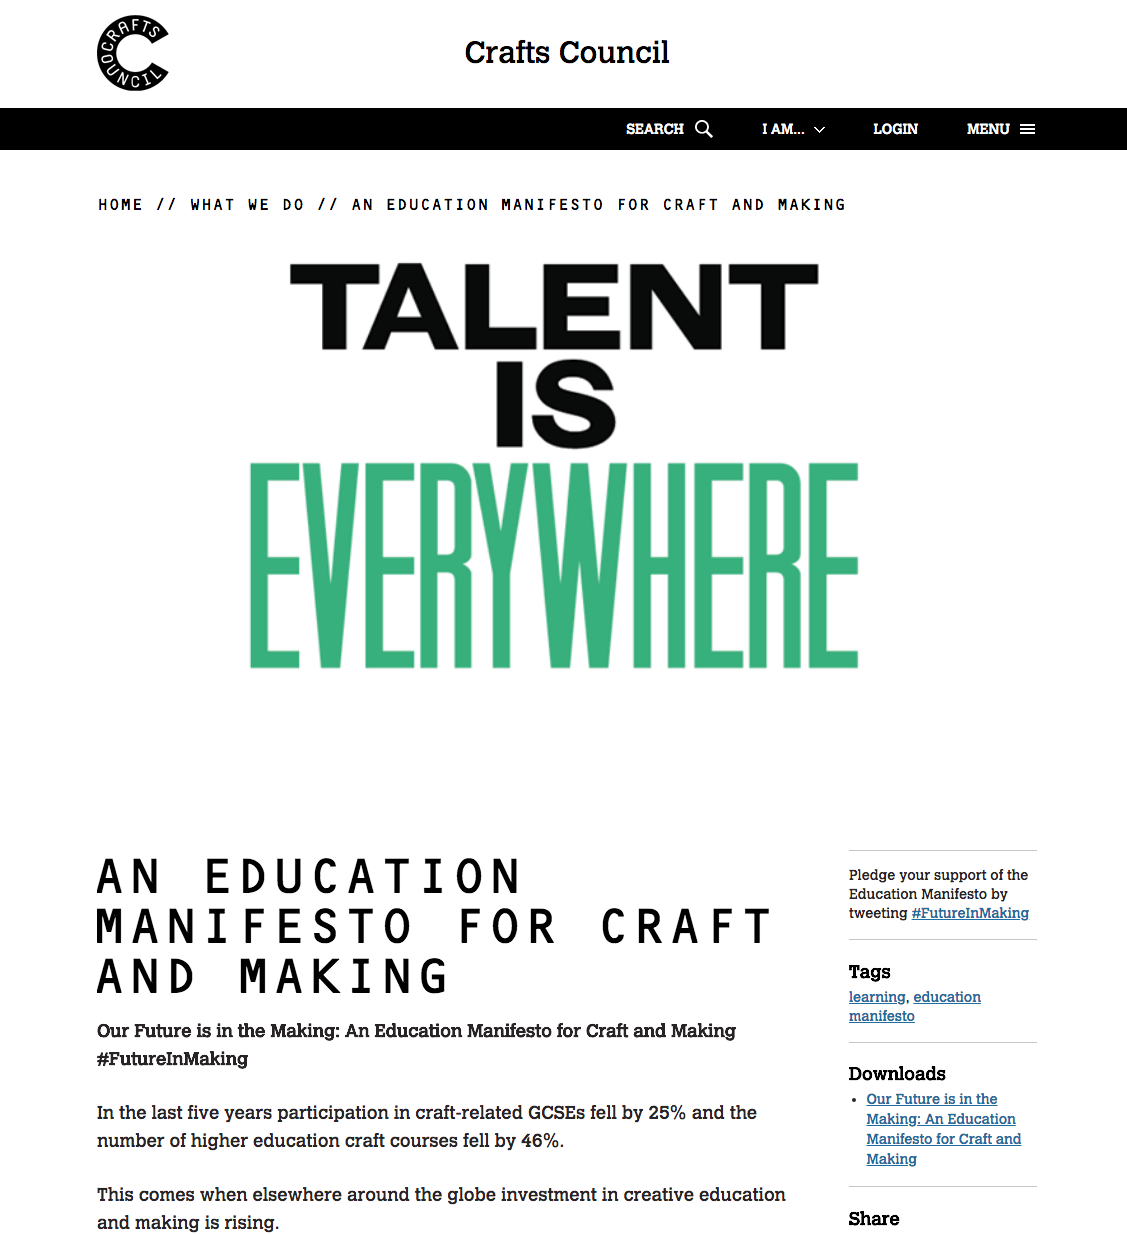 Craft Council UK: Our Future is in the Making: An Education Manifesto for Crafts and Making